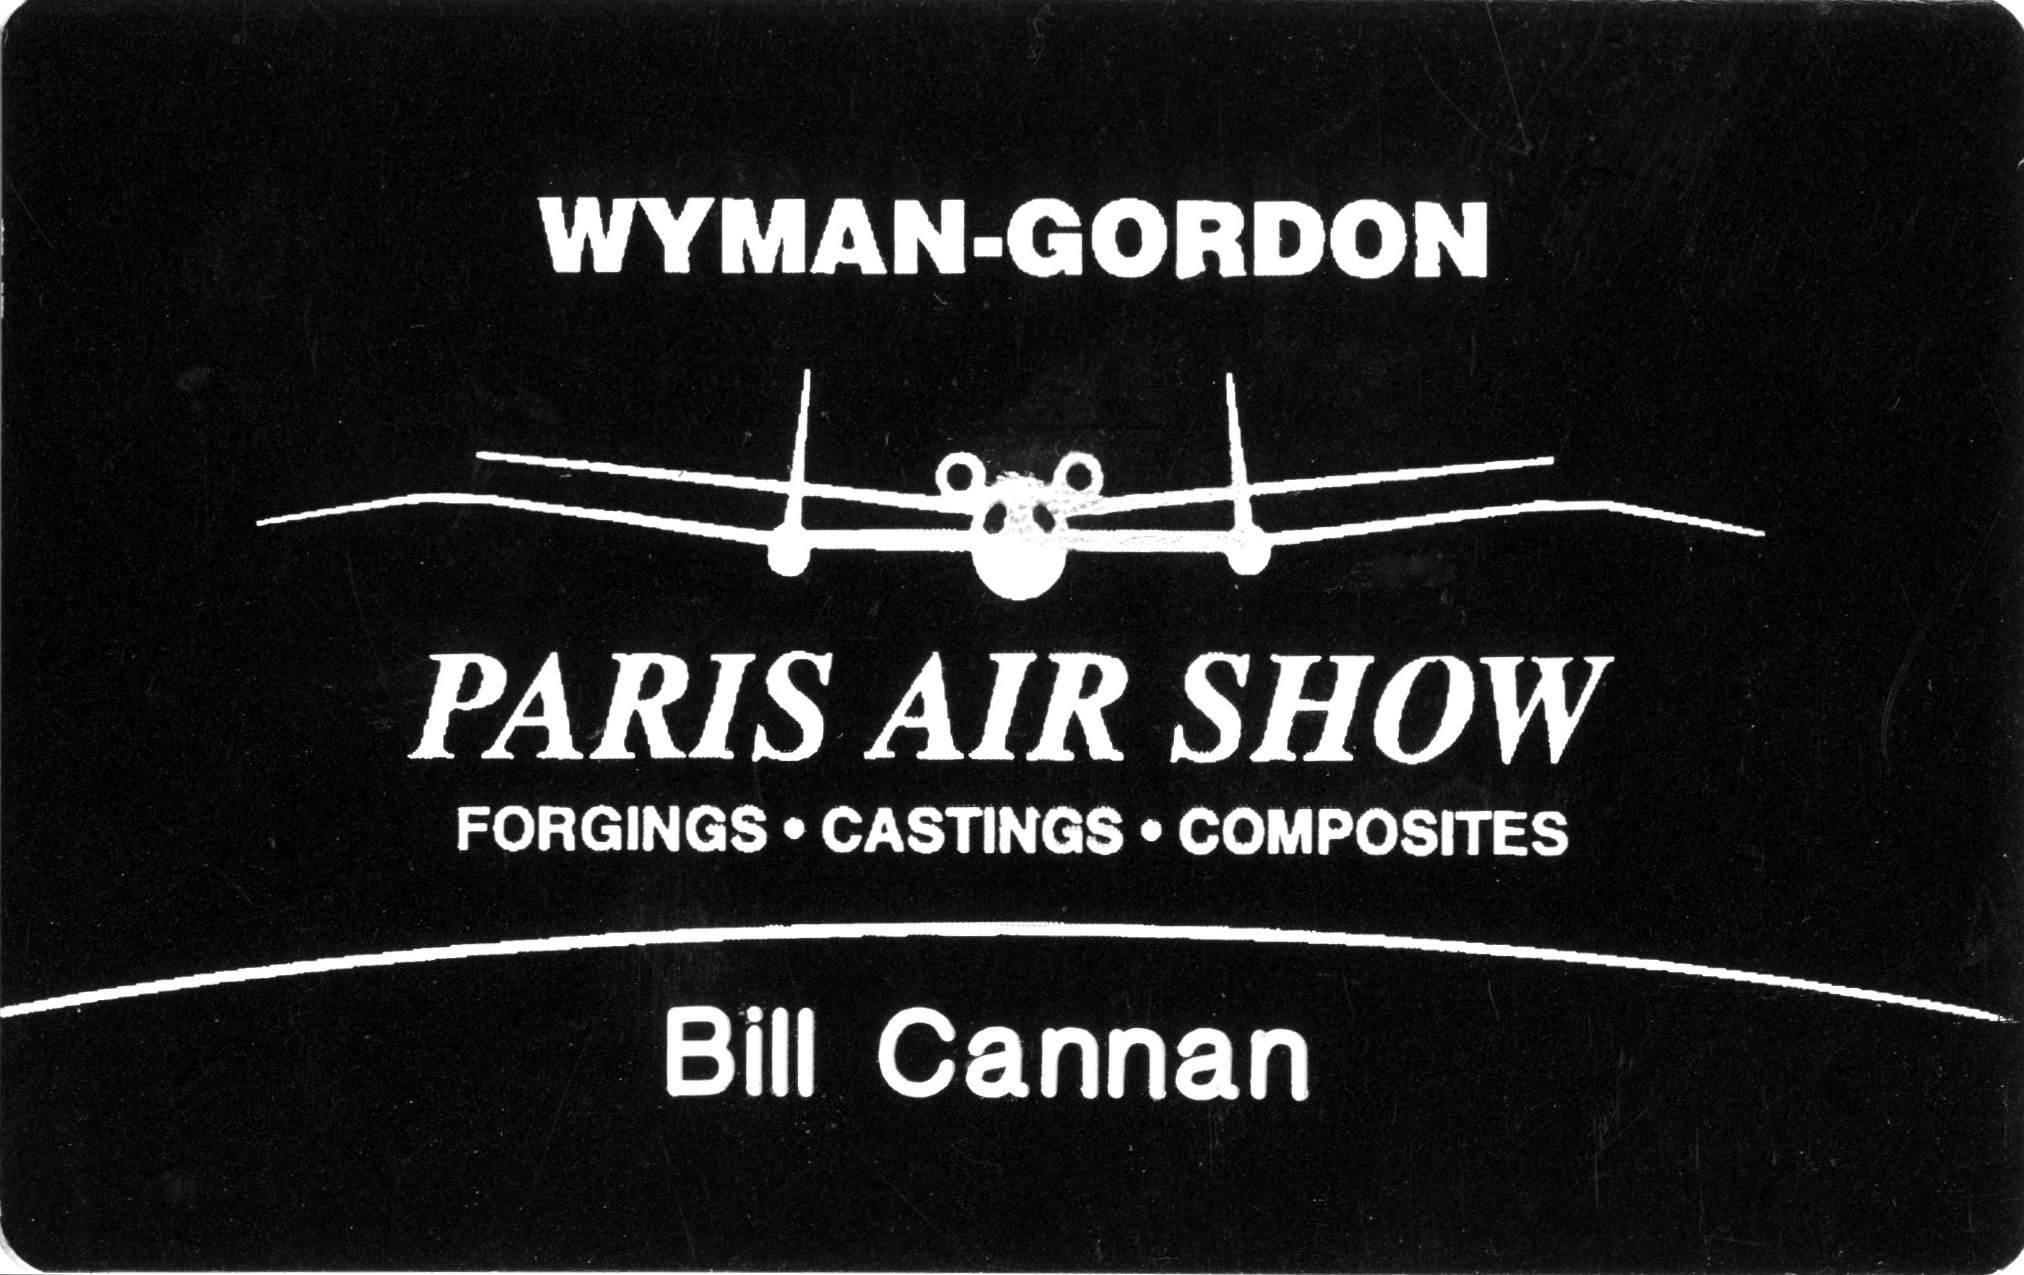 Bill Cannan's Paris Air Show / Wyman Gordon identification badge.